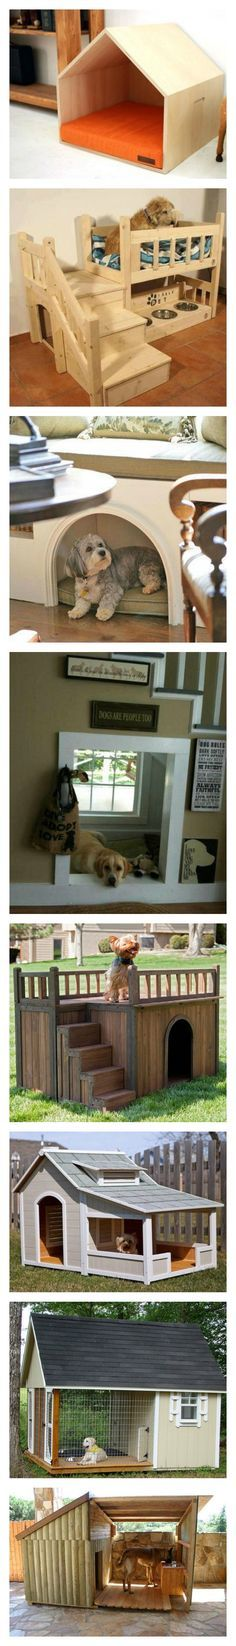 Amazing dog houses * Indoor and outdoor